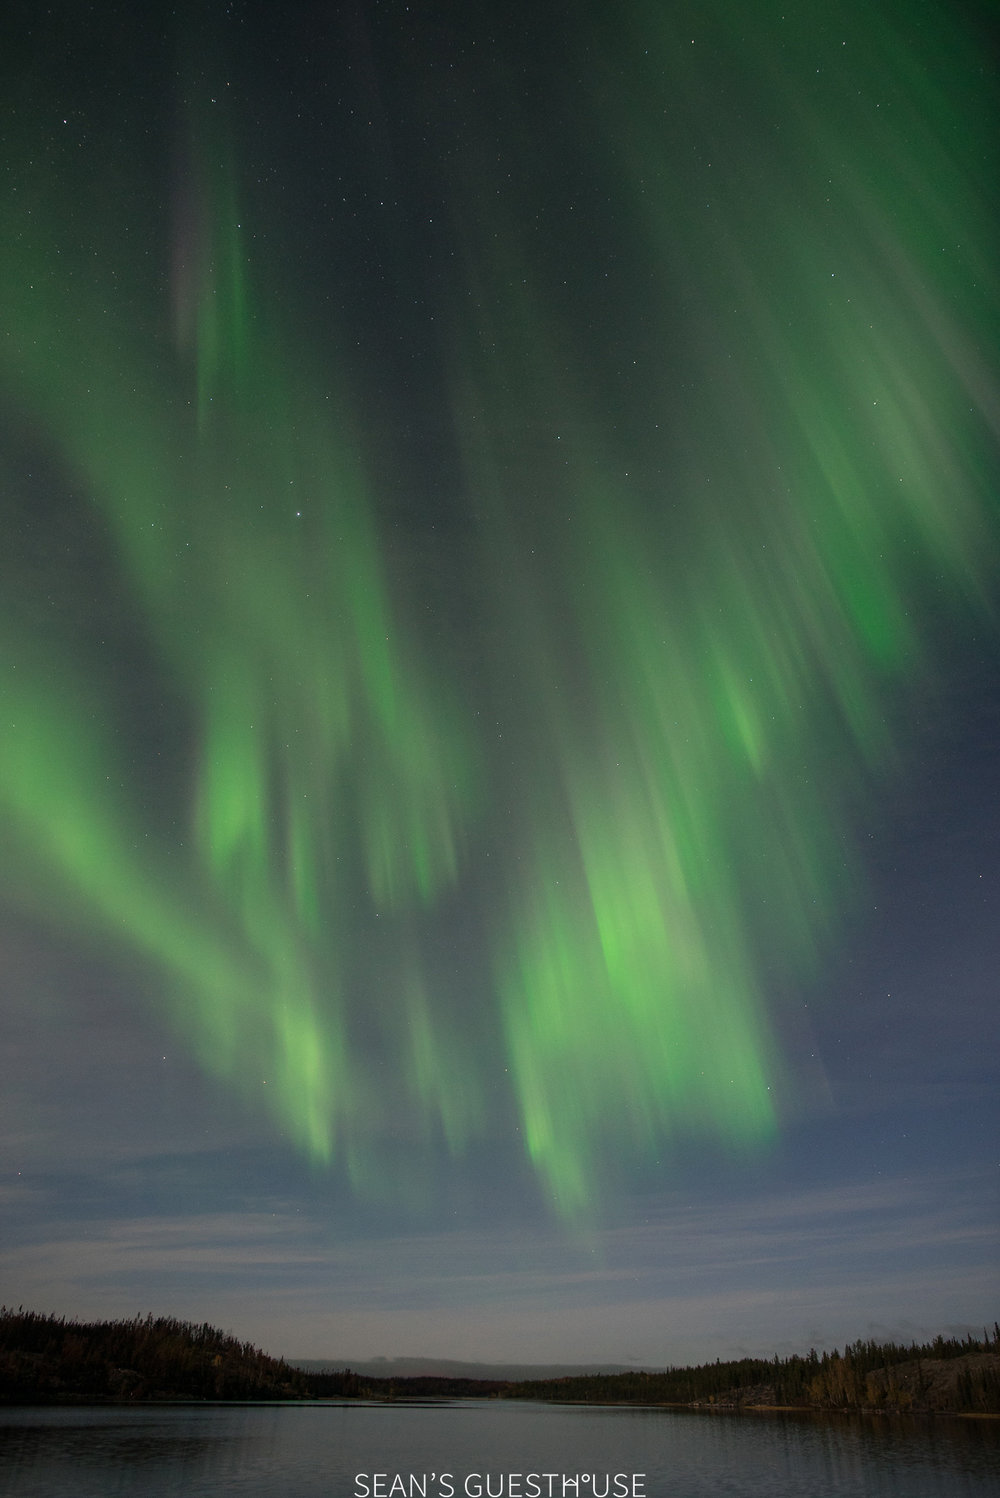 Sean's Guesthouse - Yellowknife Northern Lights Viewing - 3.jpg